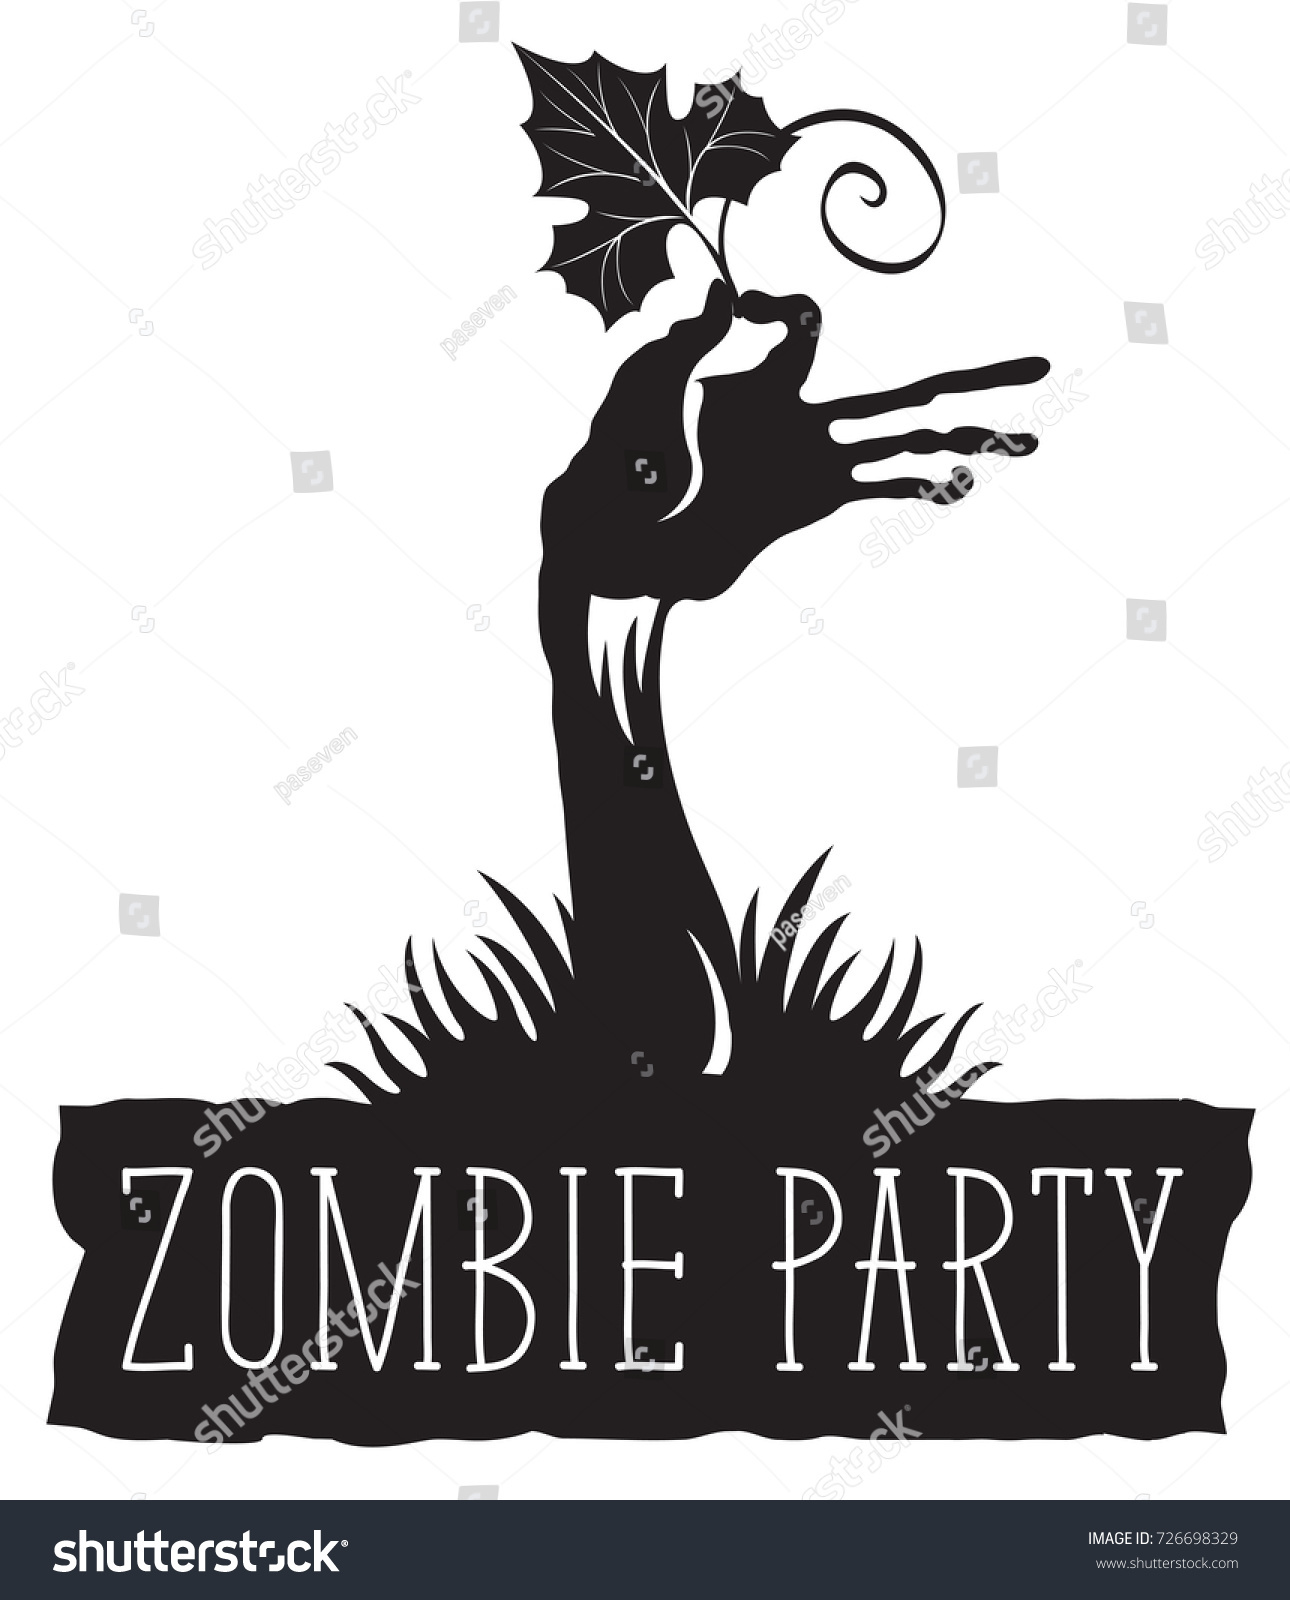 Vector Lettering Zombie Party Zombie Hand Stock Vector (Royalty Free ...